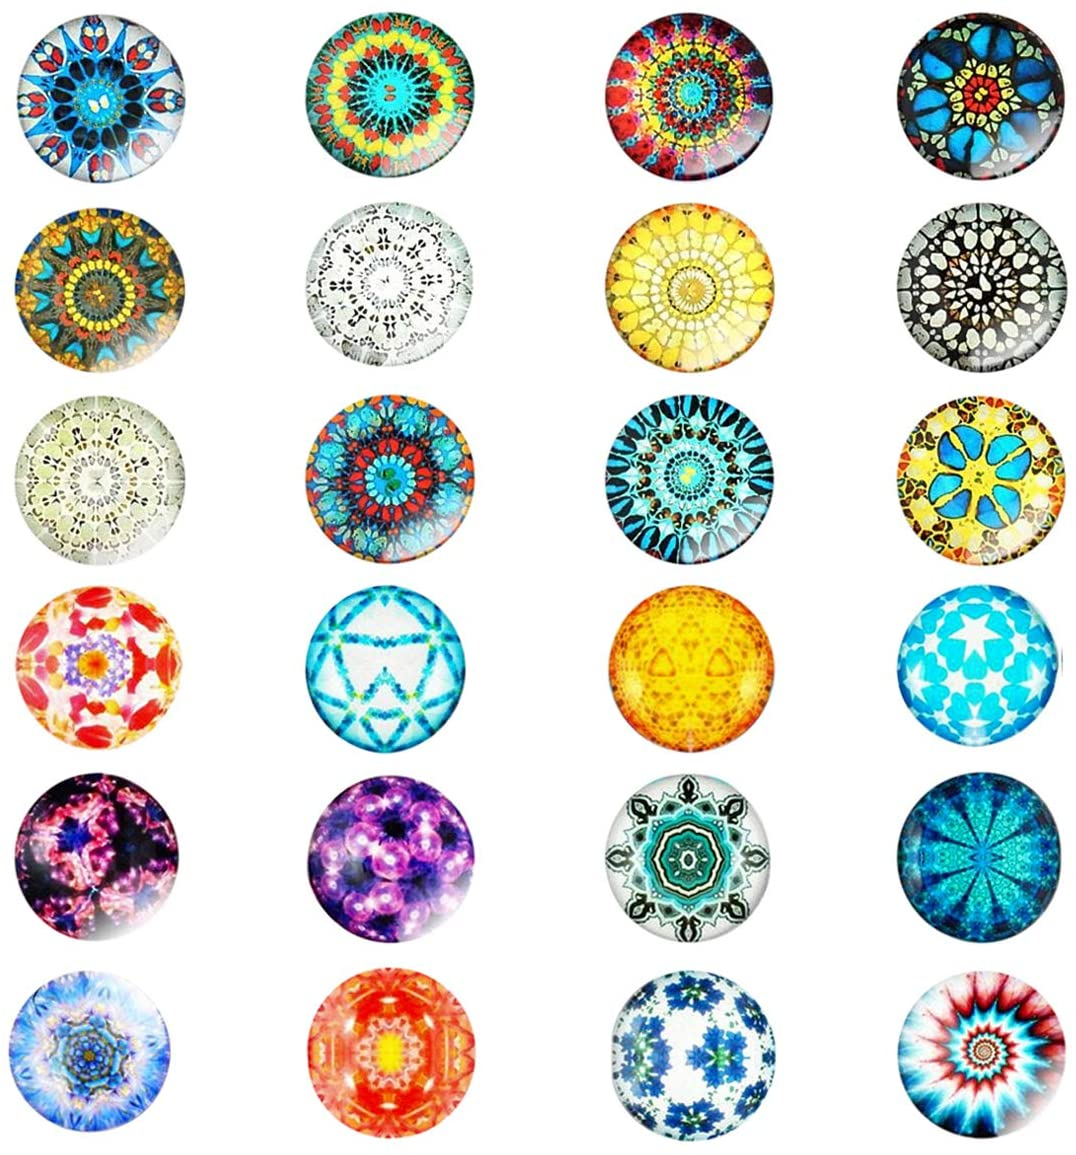 24 Pieces Beautiful Glass Fridge Magnets, Pretty Refrigerator Magnets for Office Cabinet Refrigerator Whiteboard Photo